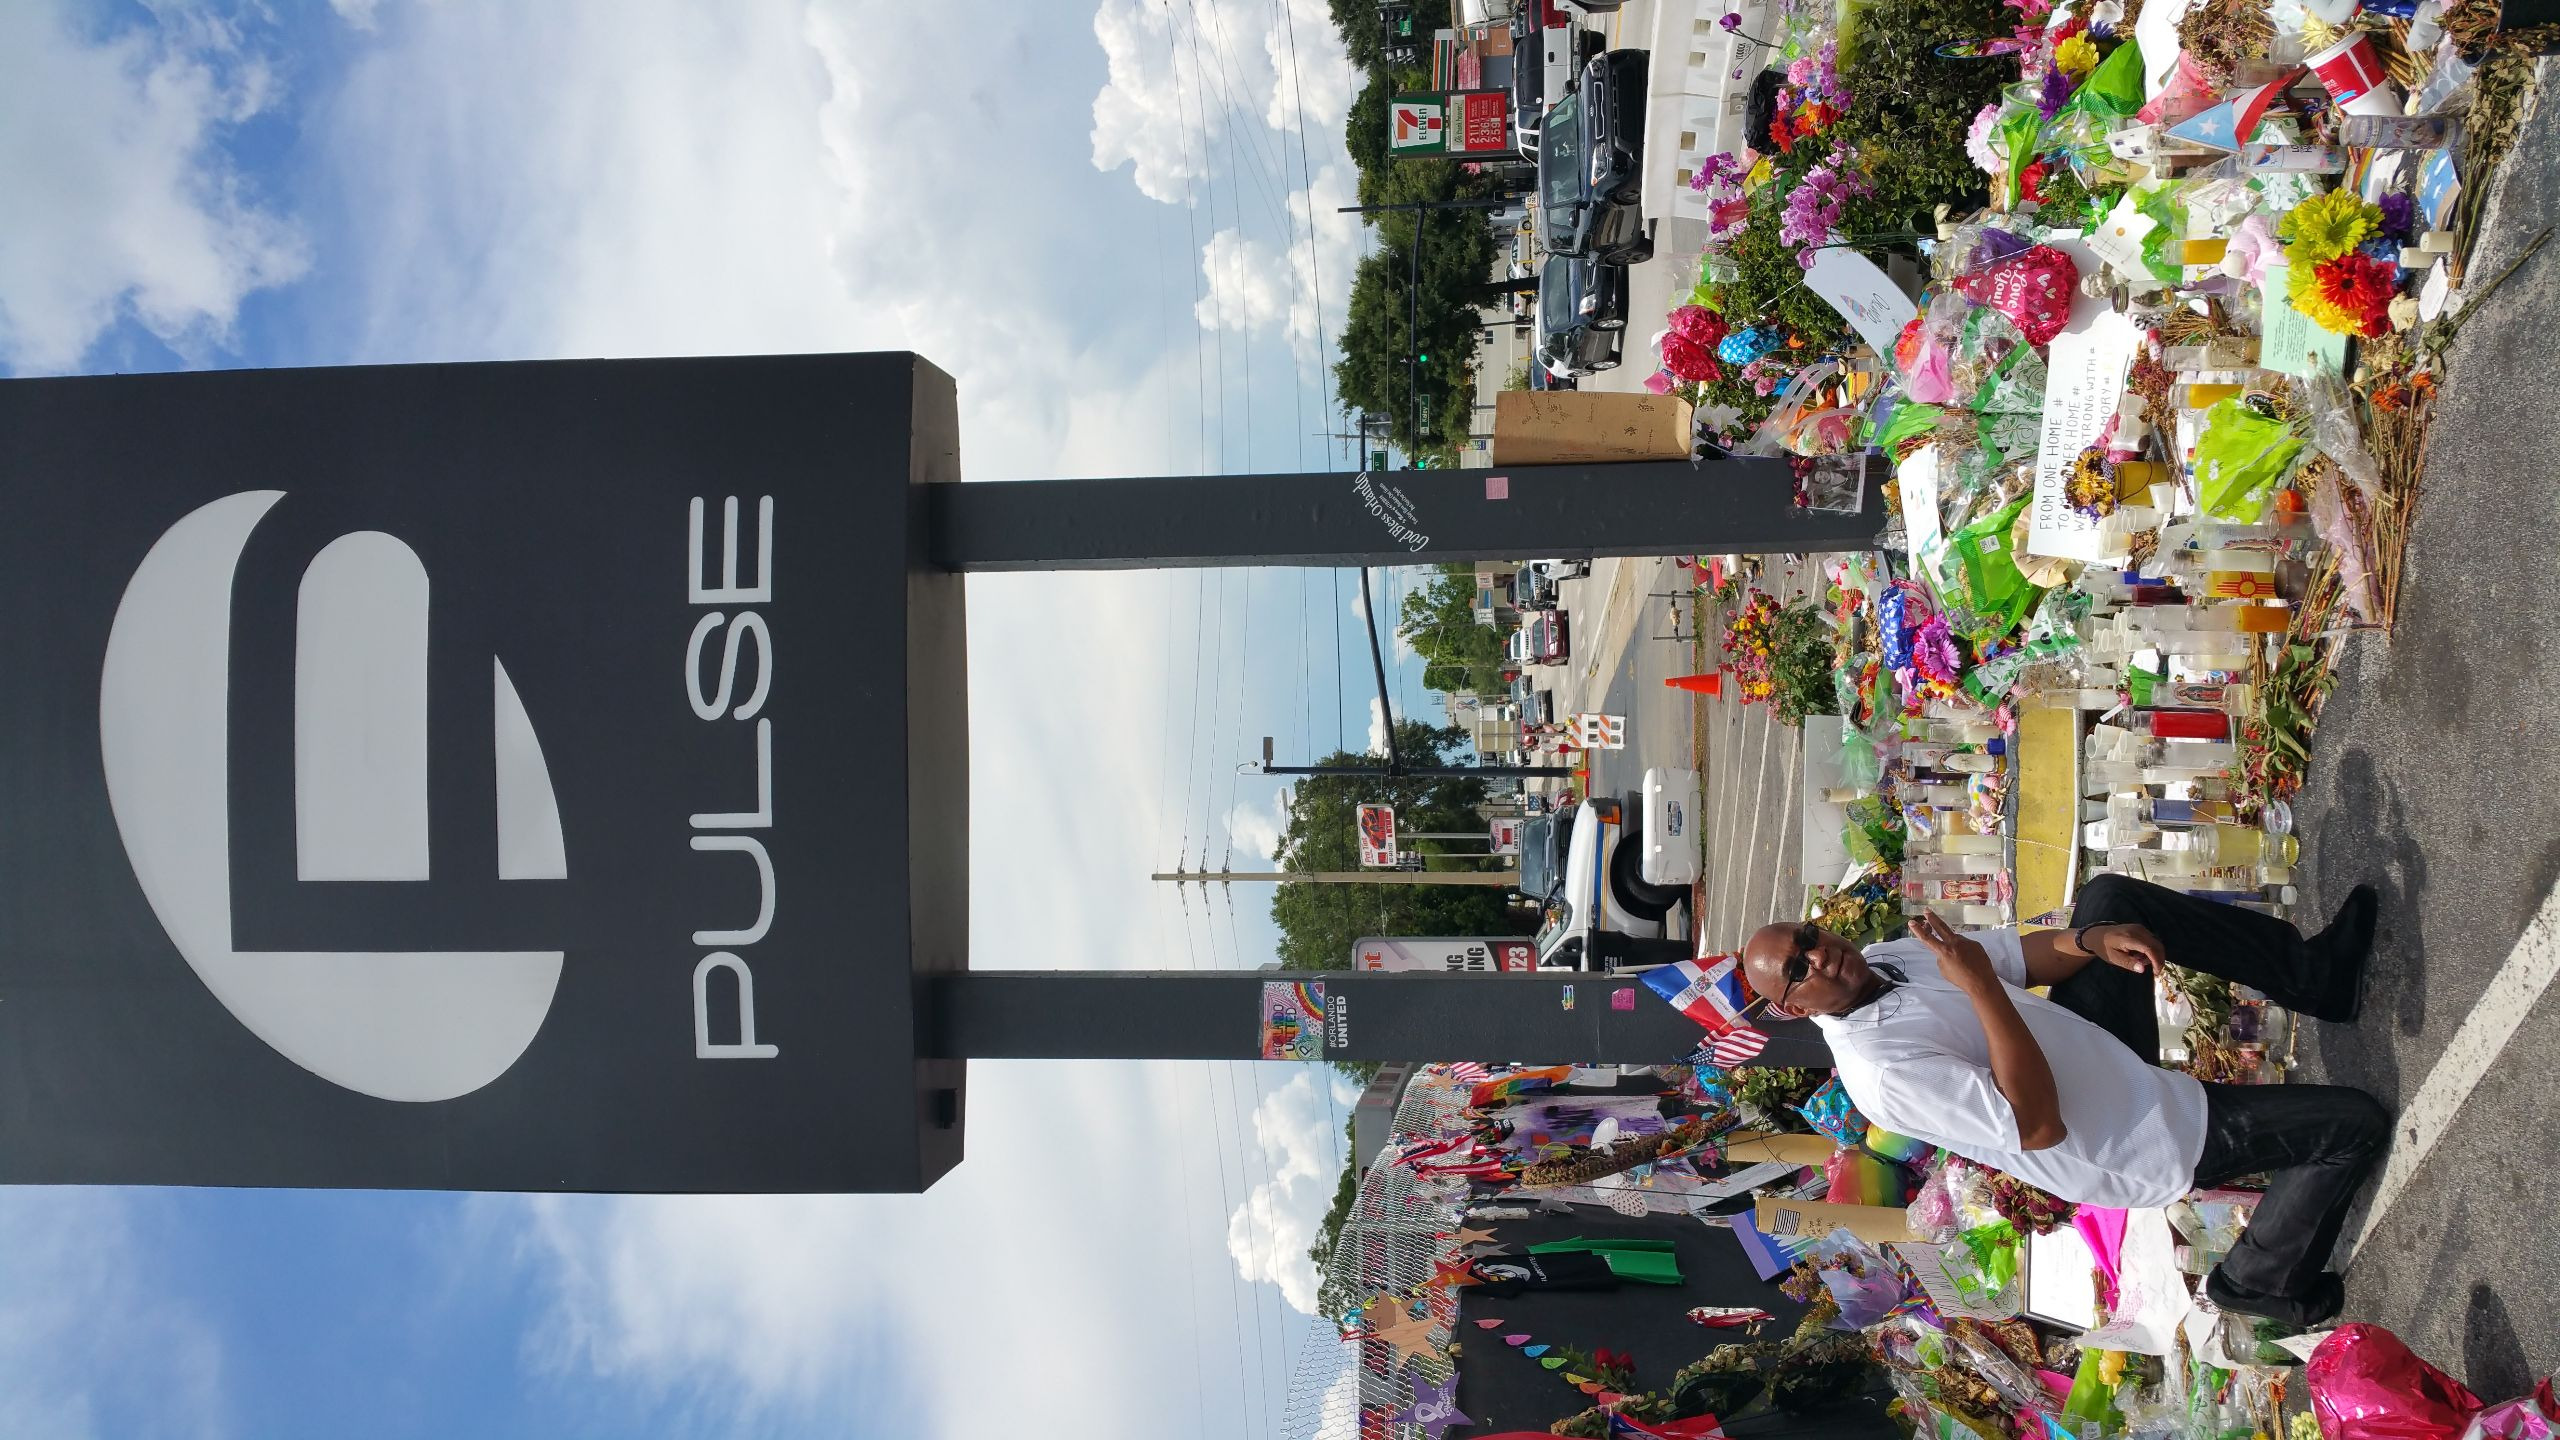 Pulse Nightclub in Orlando Florida 5